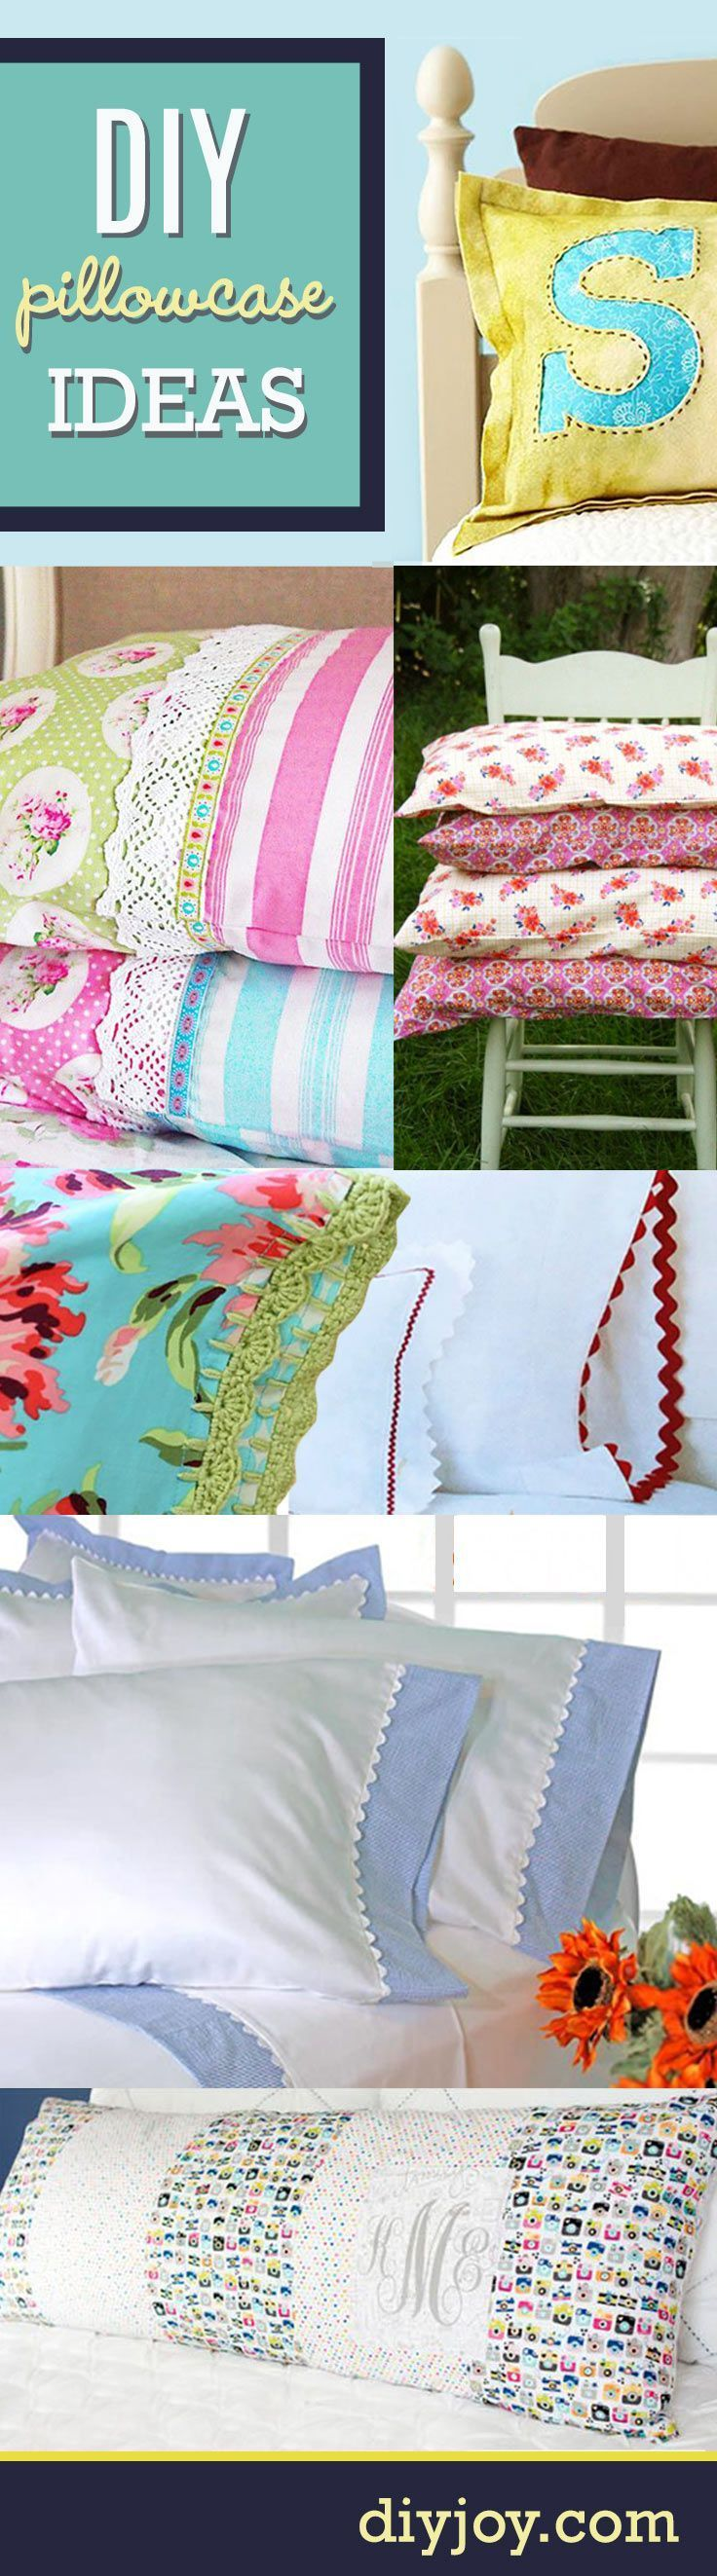 Sewing projects for the home diy pillowcase ideas sewing ideas